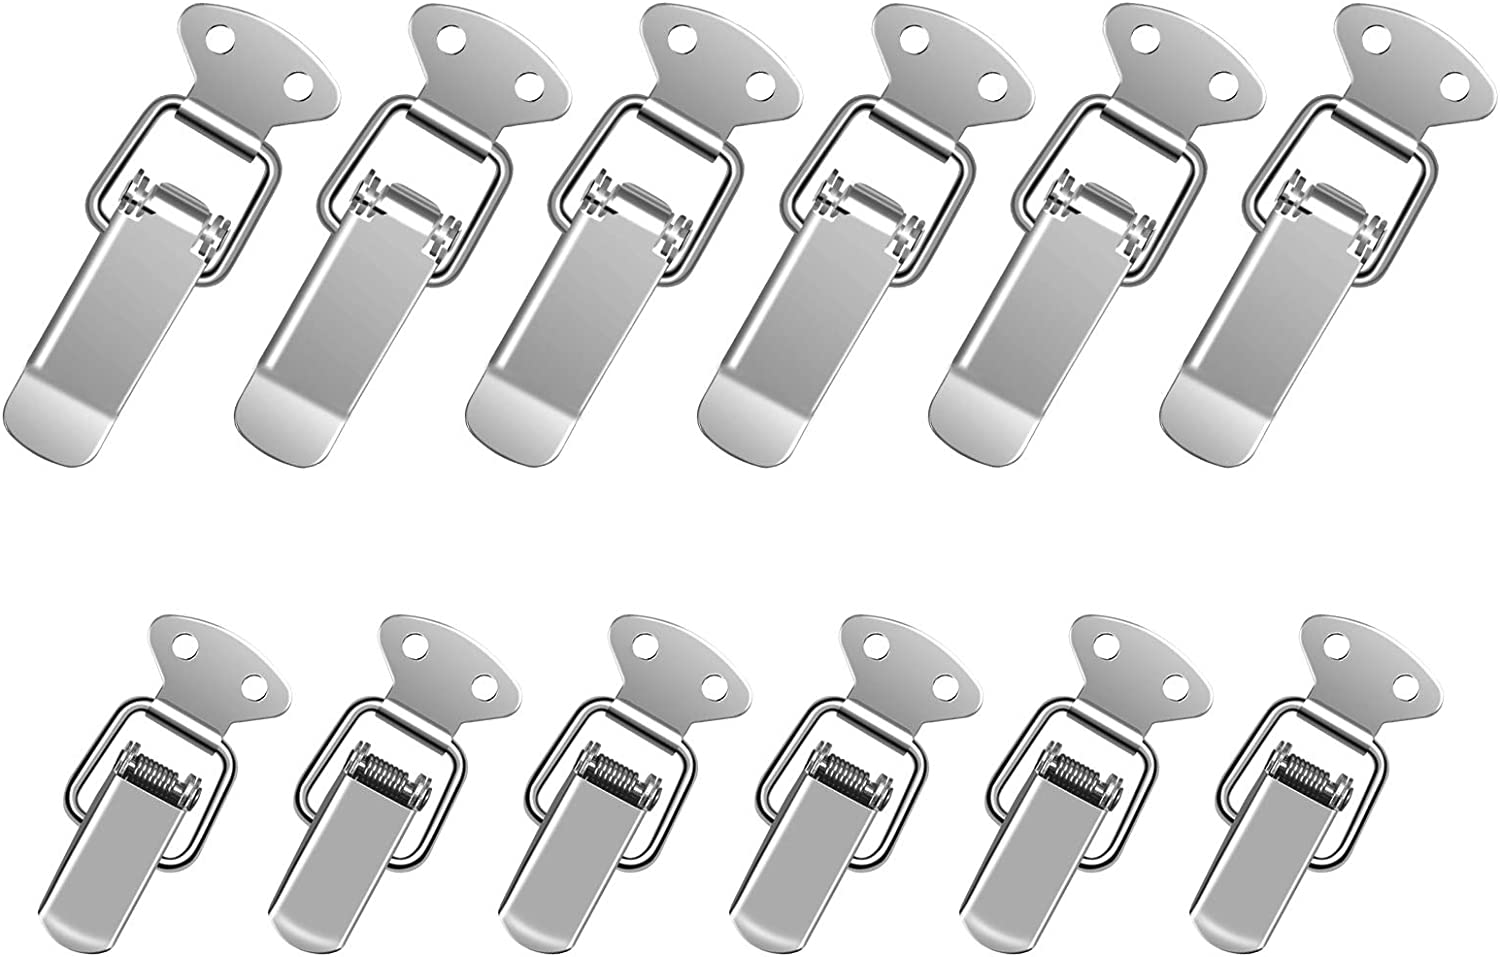 LANMOK 12 Sets Spring Loaded Toggle Latches Stainless Steel Catch Clamp Clips Furniture Hardware Toggle Switch Hasp Clamps for Case Toolbox Drawer Chest Trunk Cabinet Closet Lockers